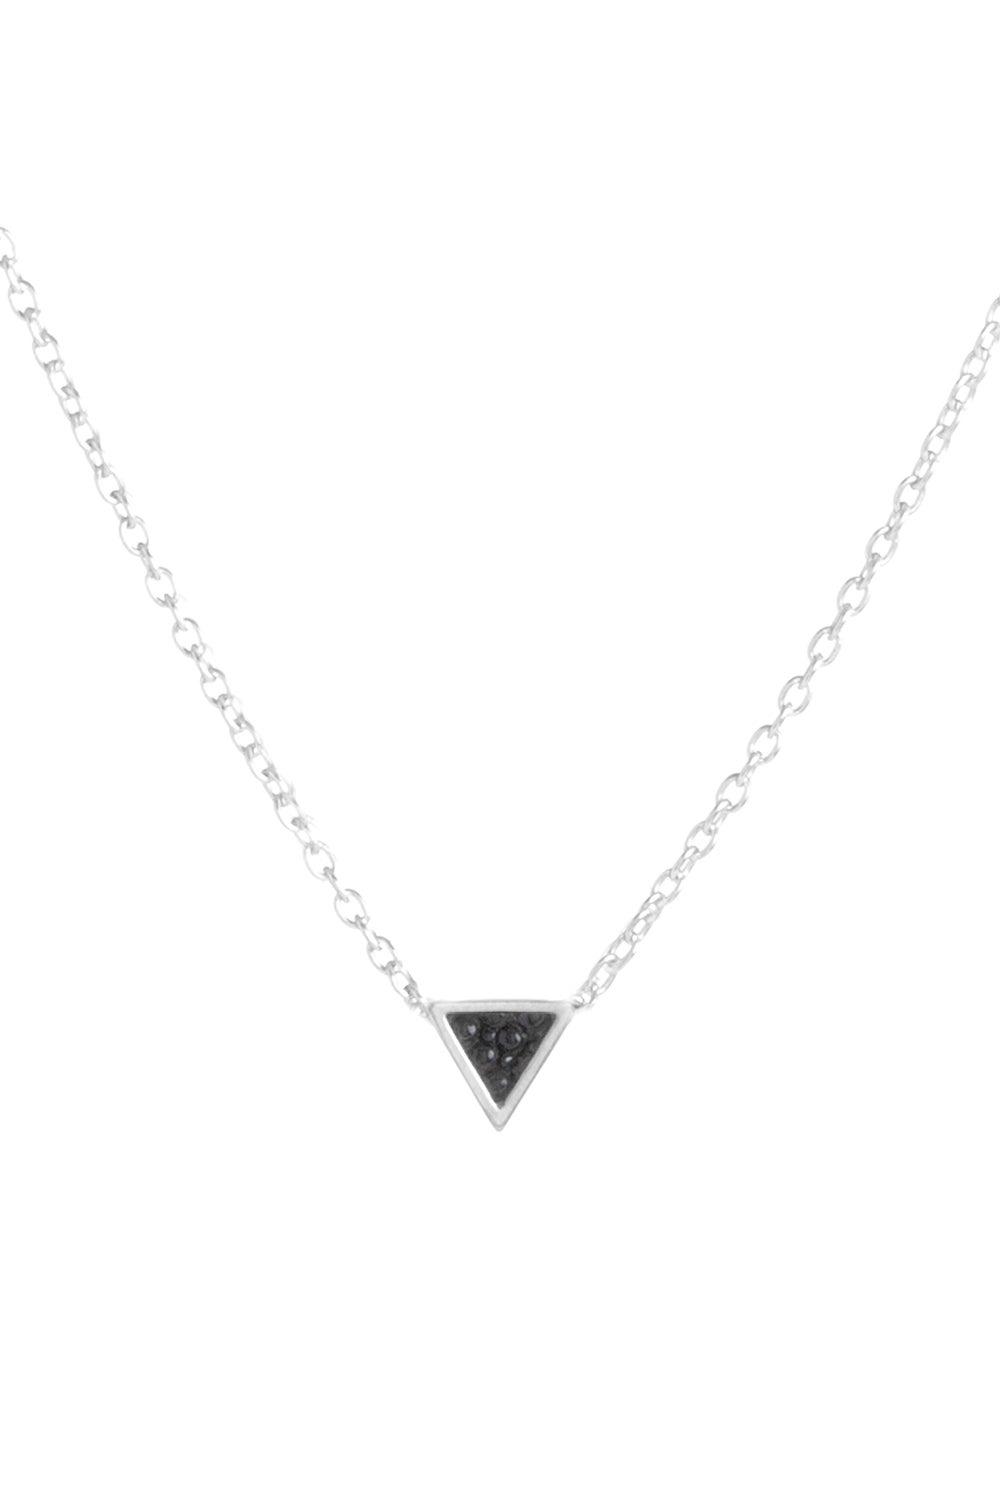 TINY TRILLION NECKLACE - SILVER